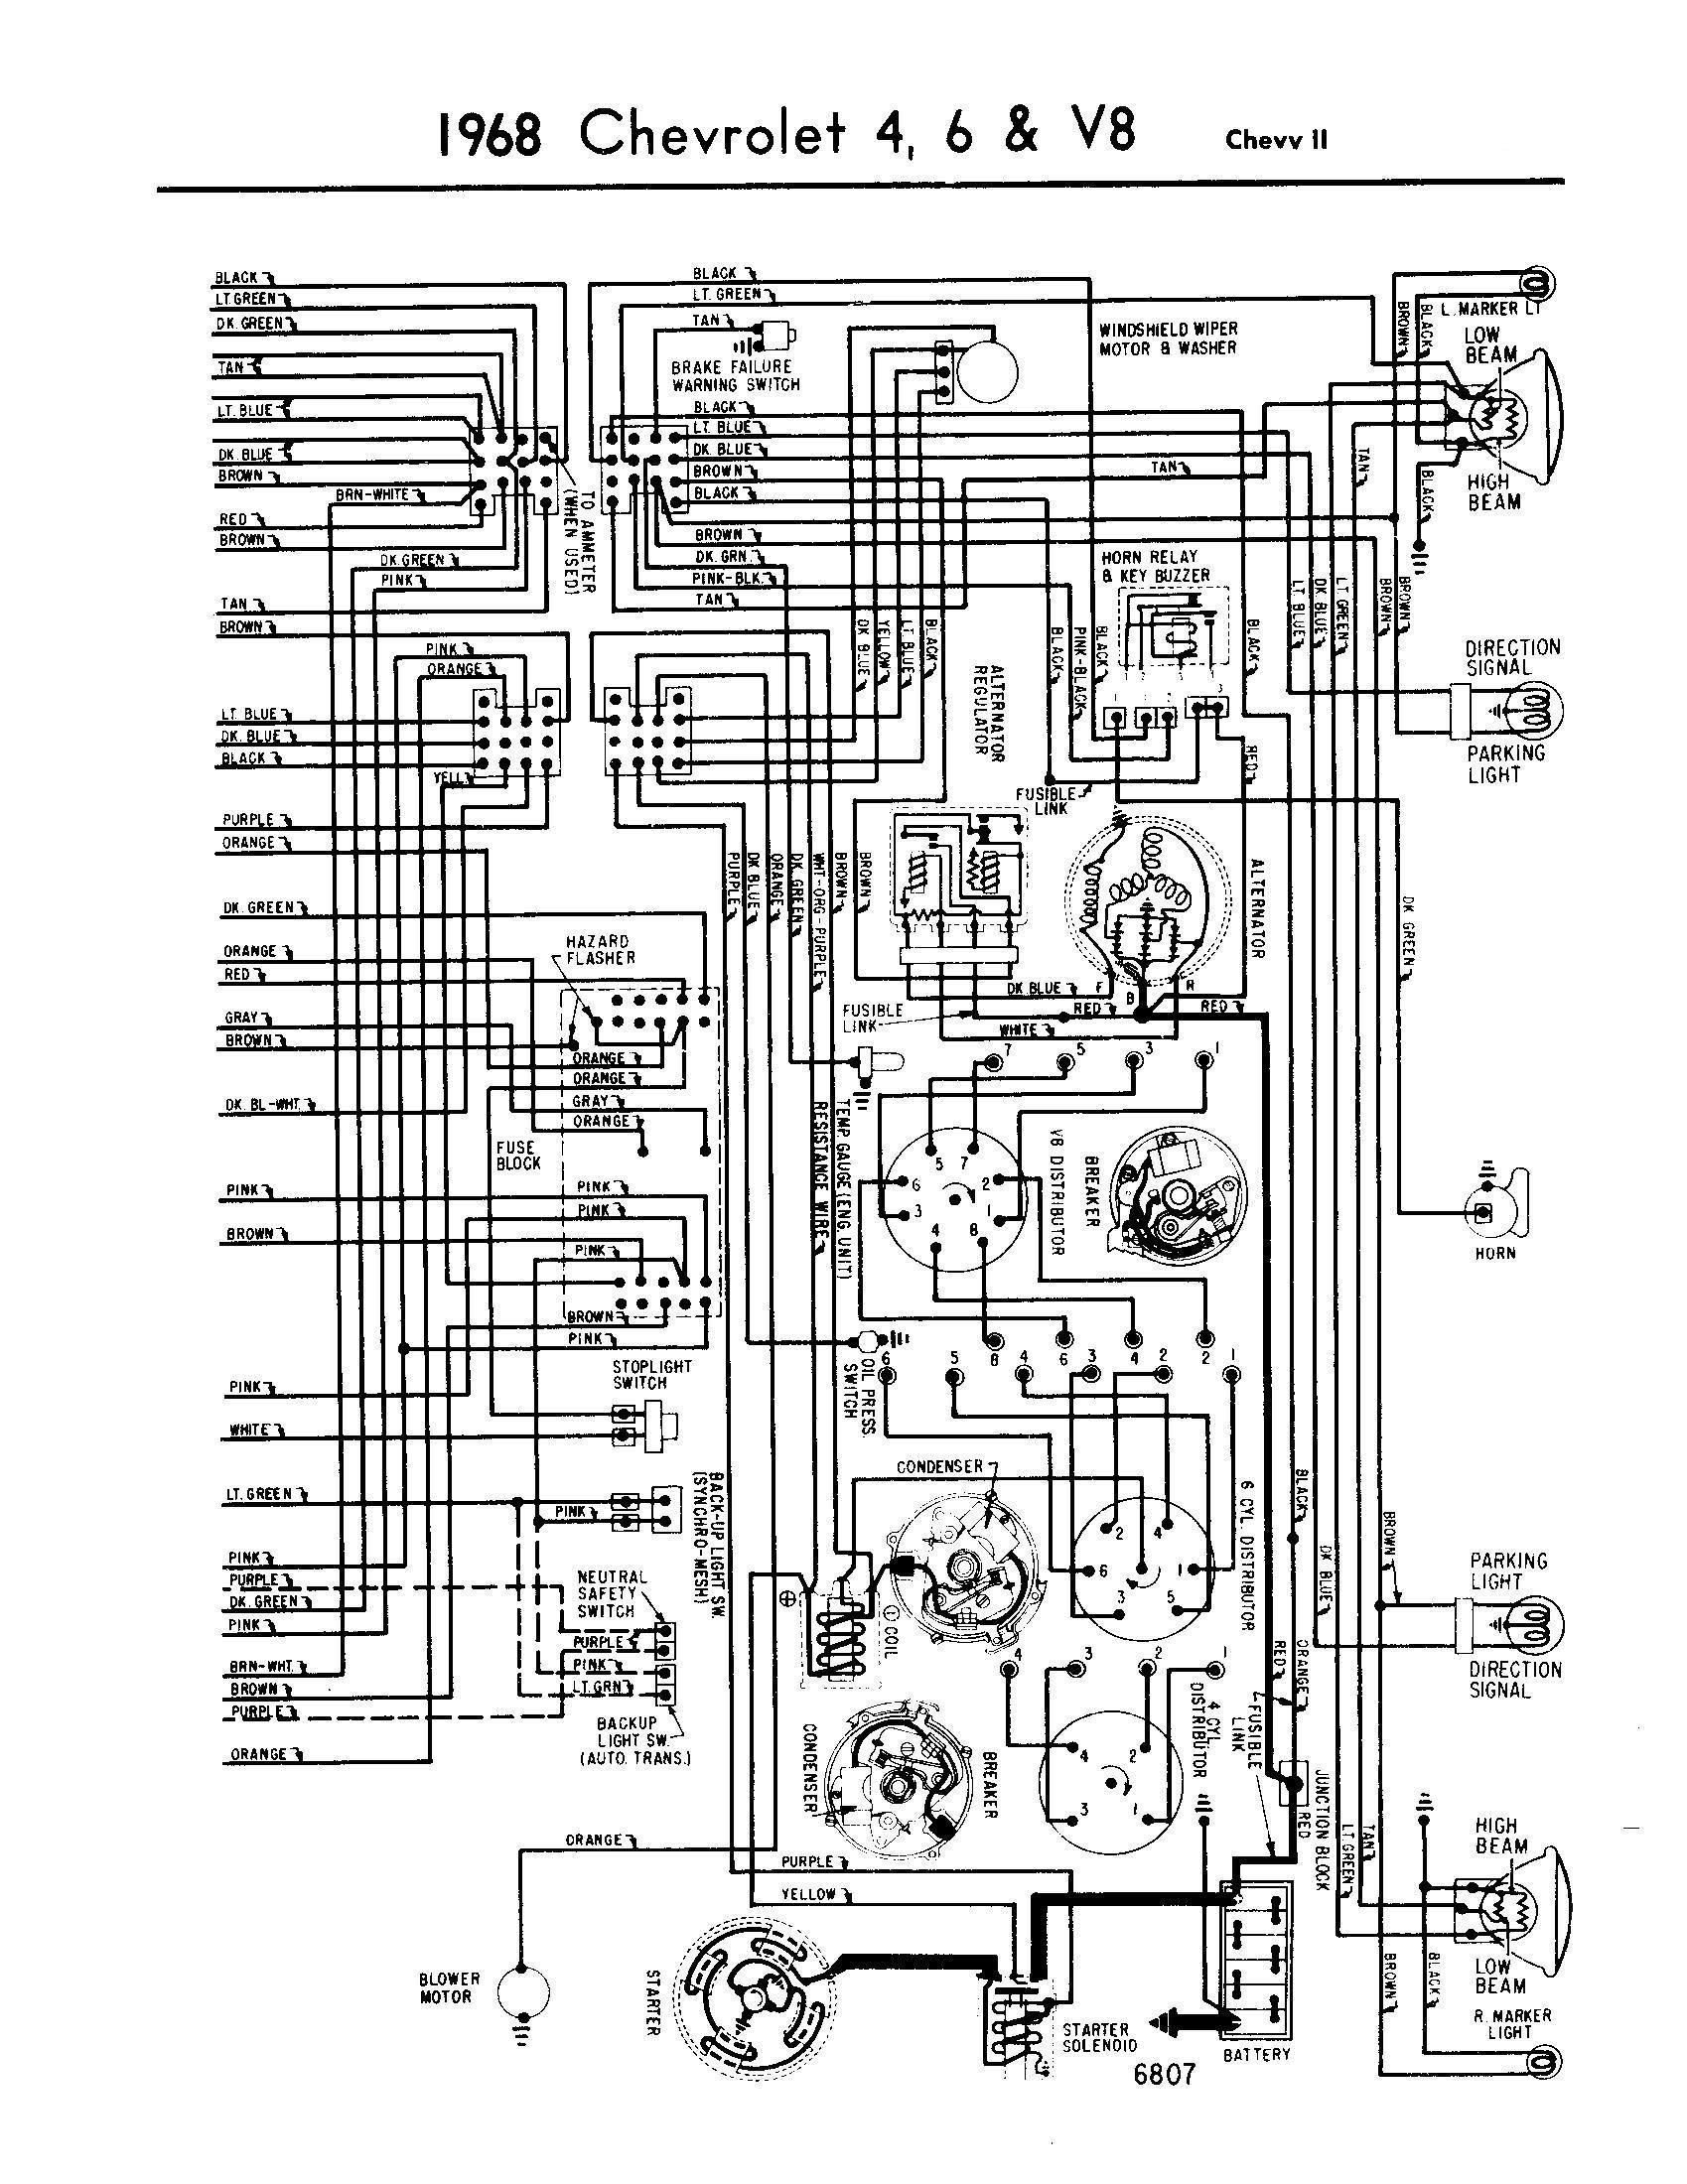 Diagram 1992 Camaro Dash Wiring Diagram Full Version Hd Quality Wiring Diagram Bandiagram Media90 It